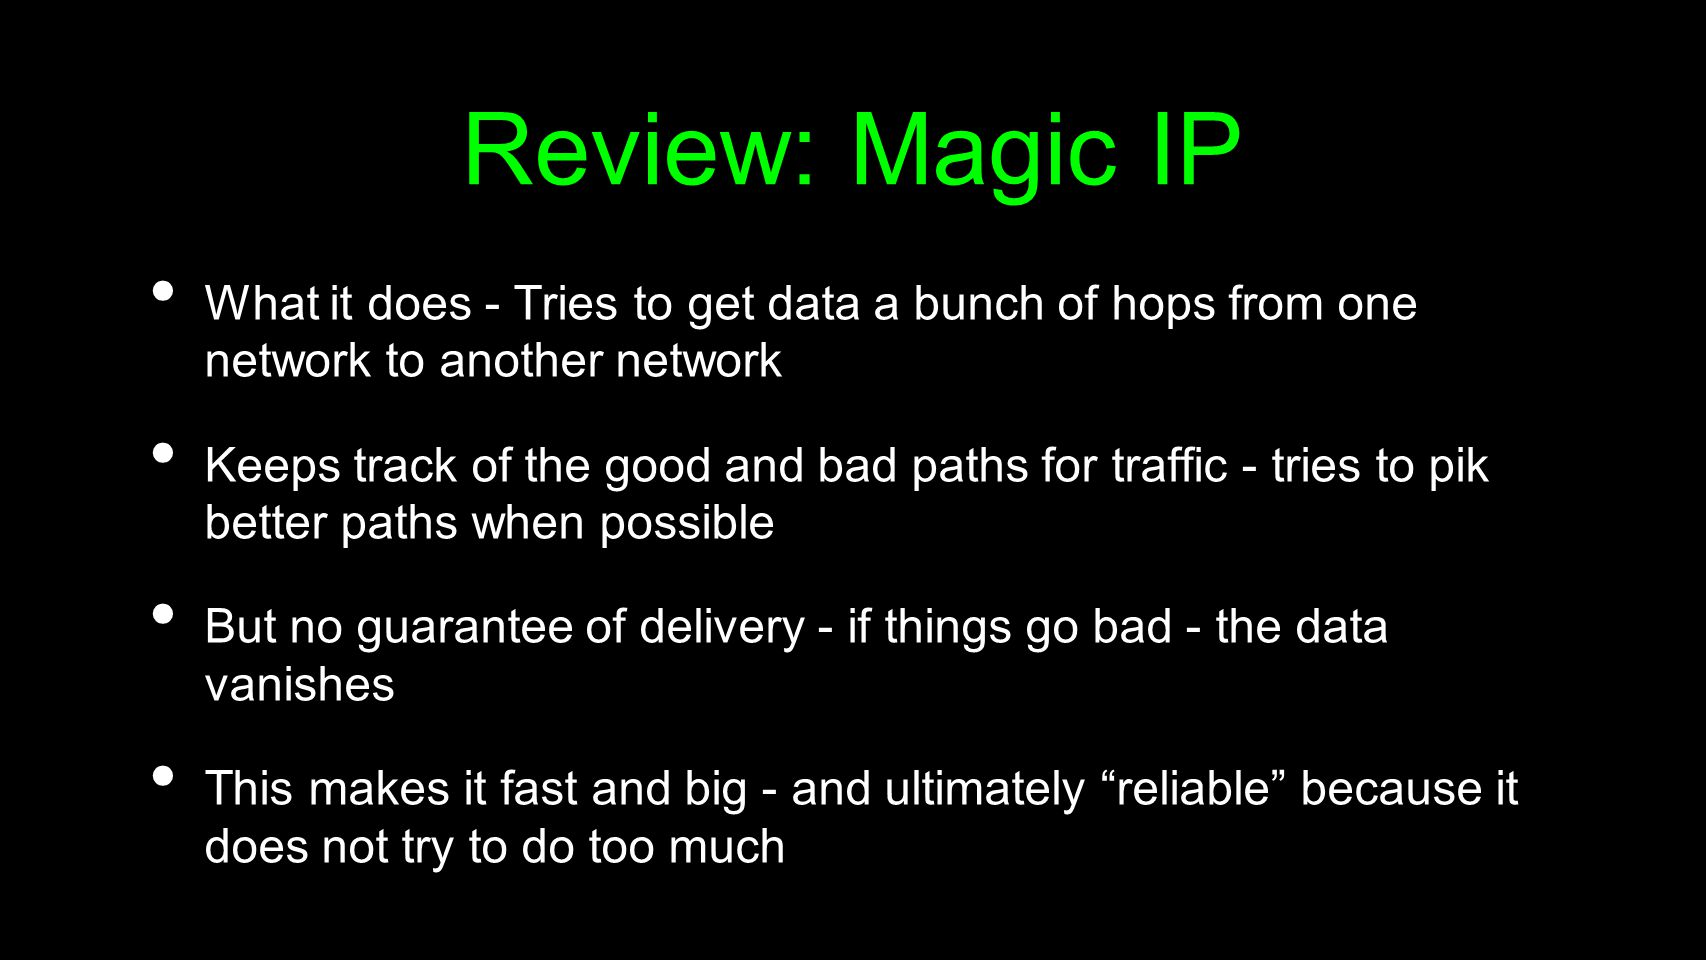 Review: Magic IP What it does - Tries to get data a bunch of hops from one network to another network.